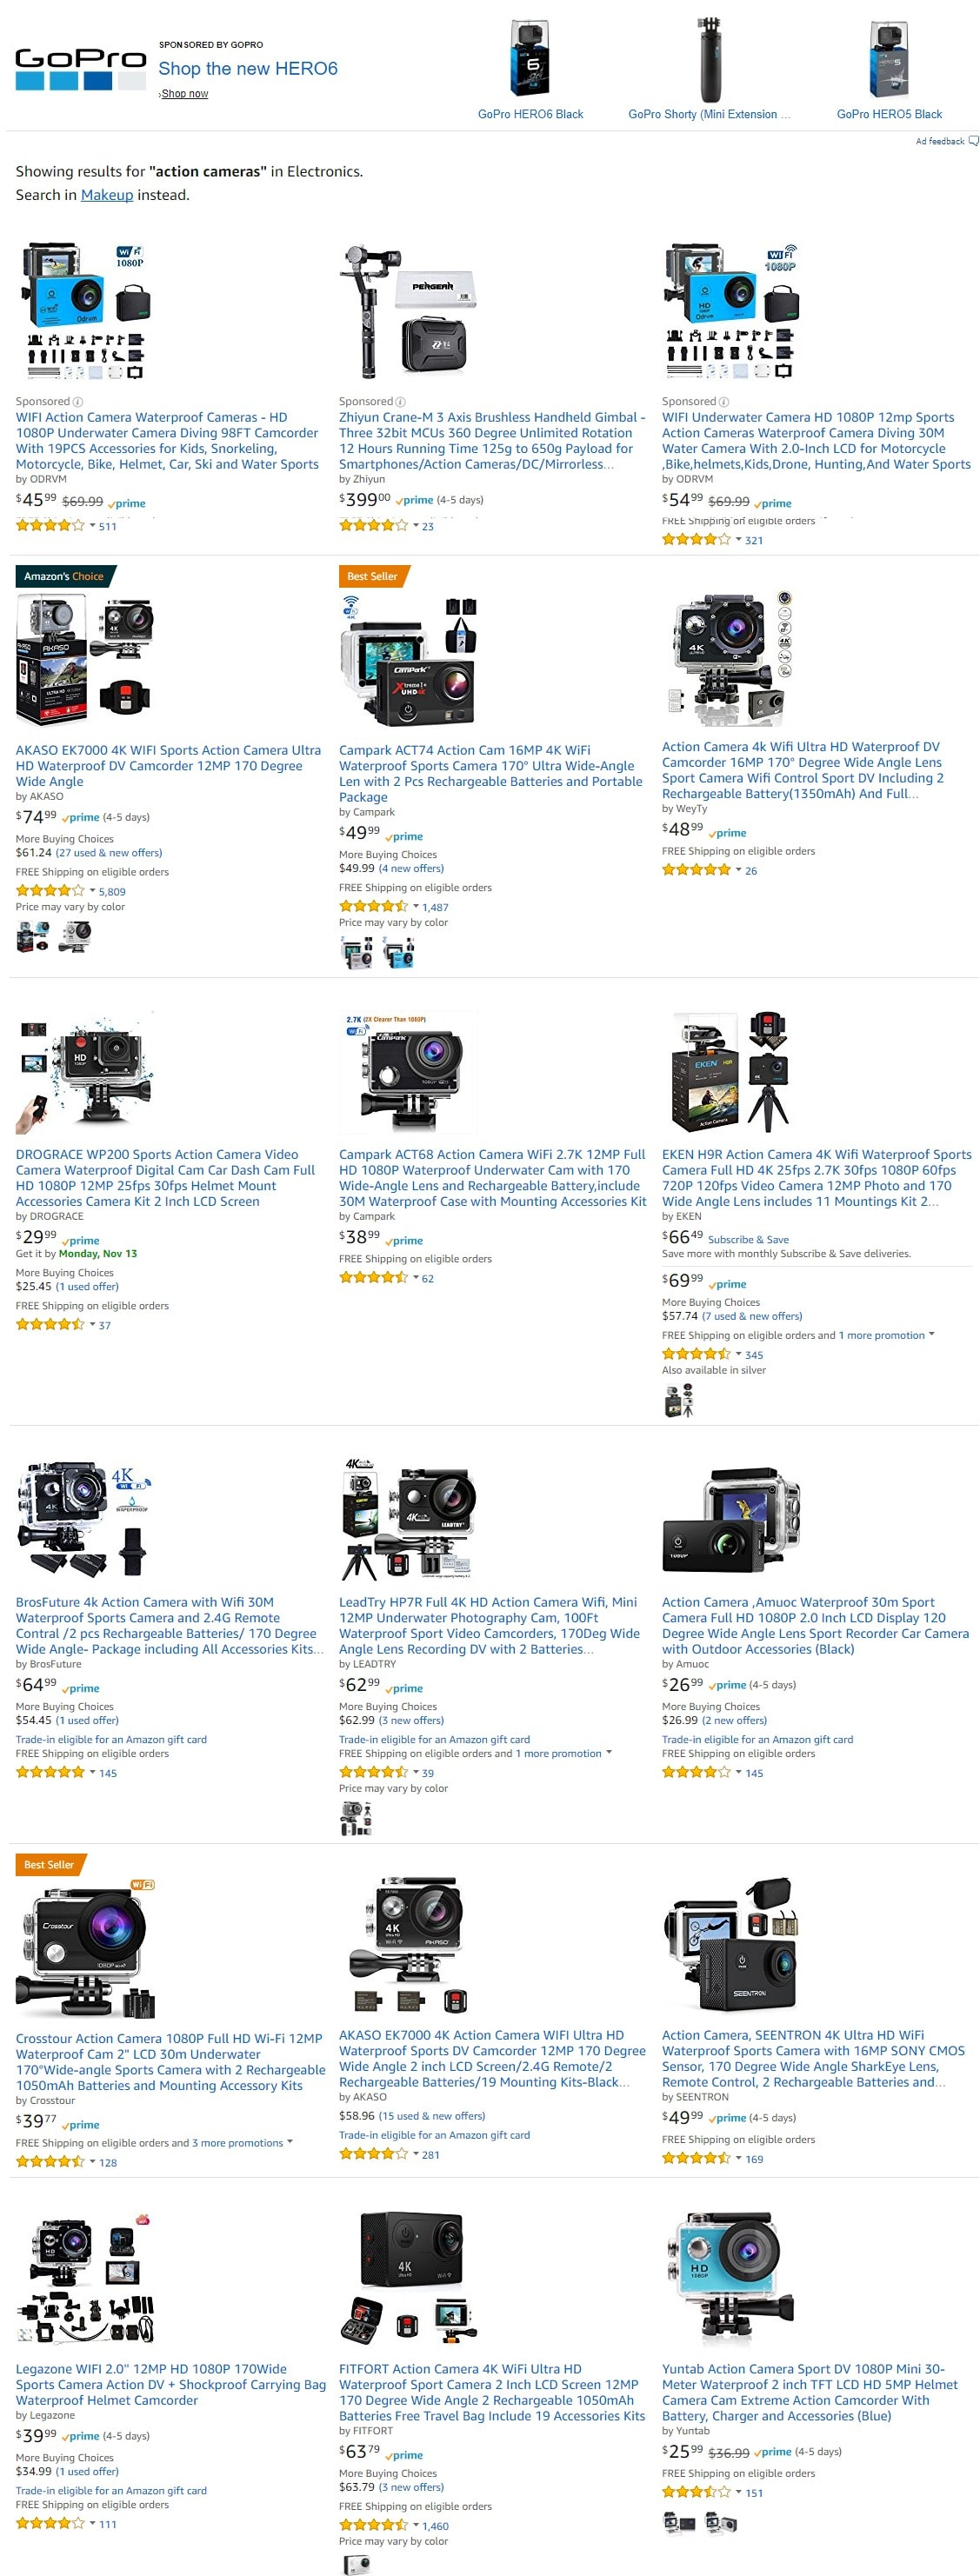 Action Camera products